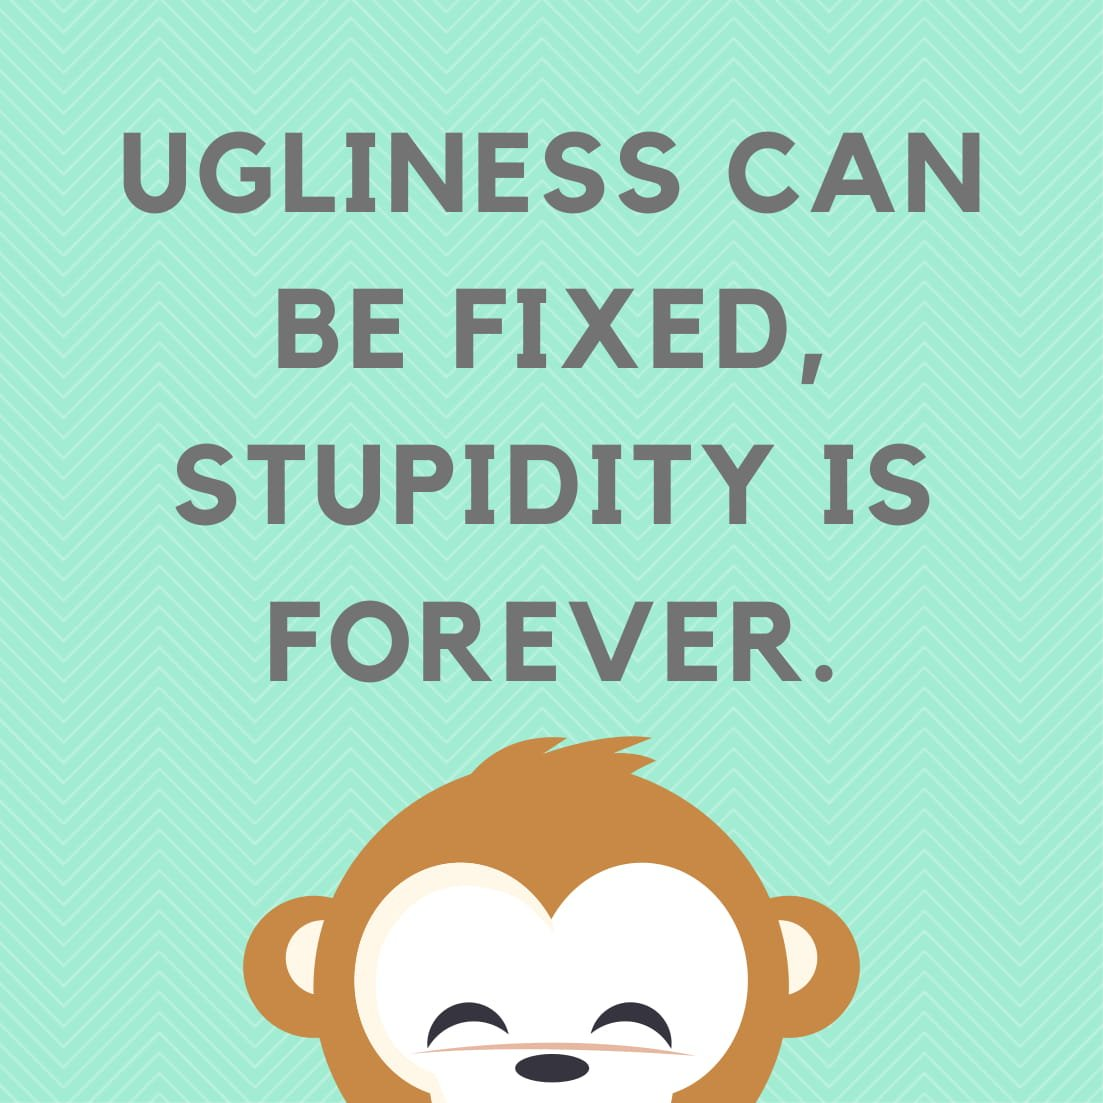 Ugliness can be fixed, stupidity is forever.